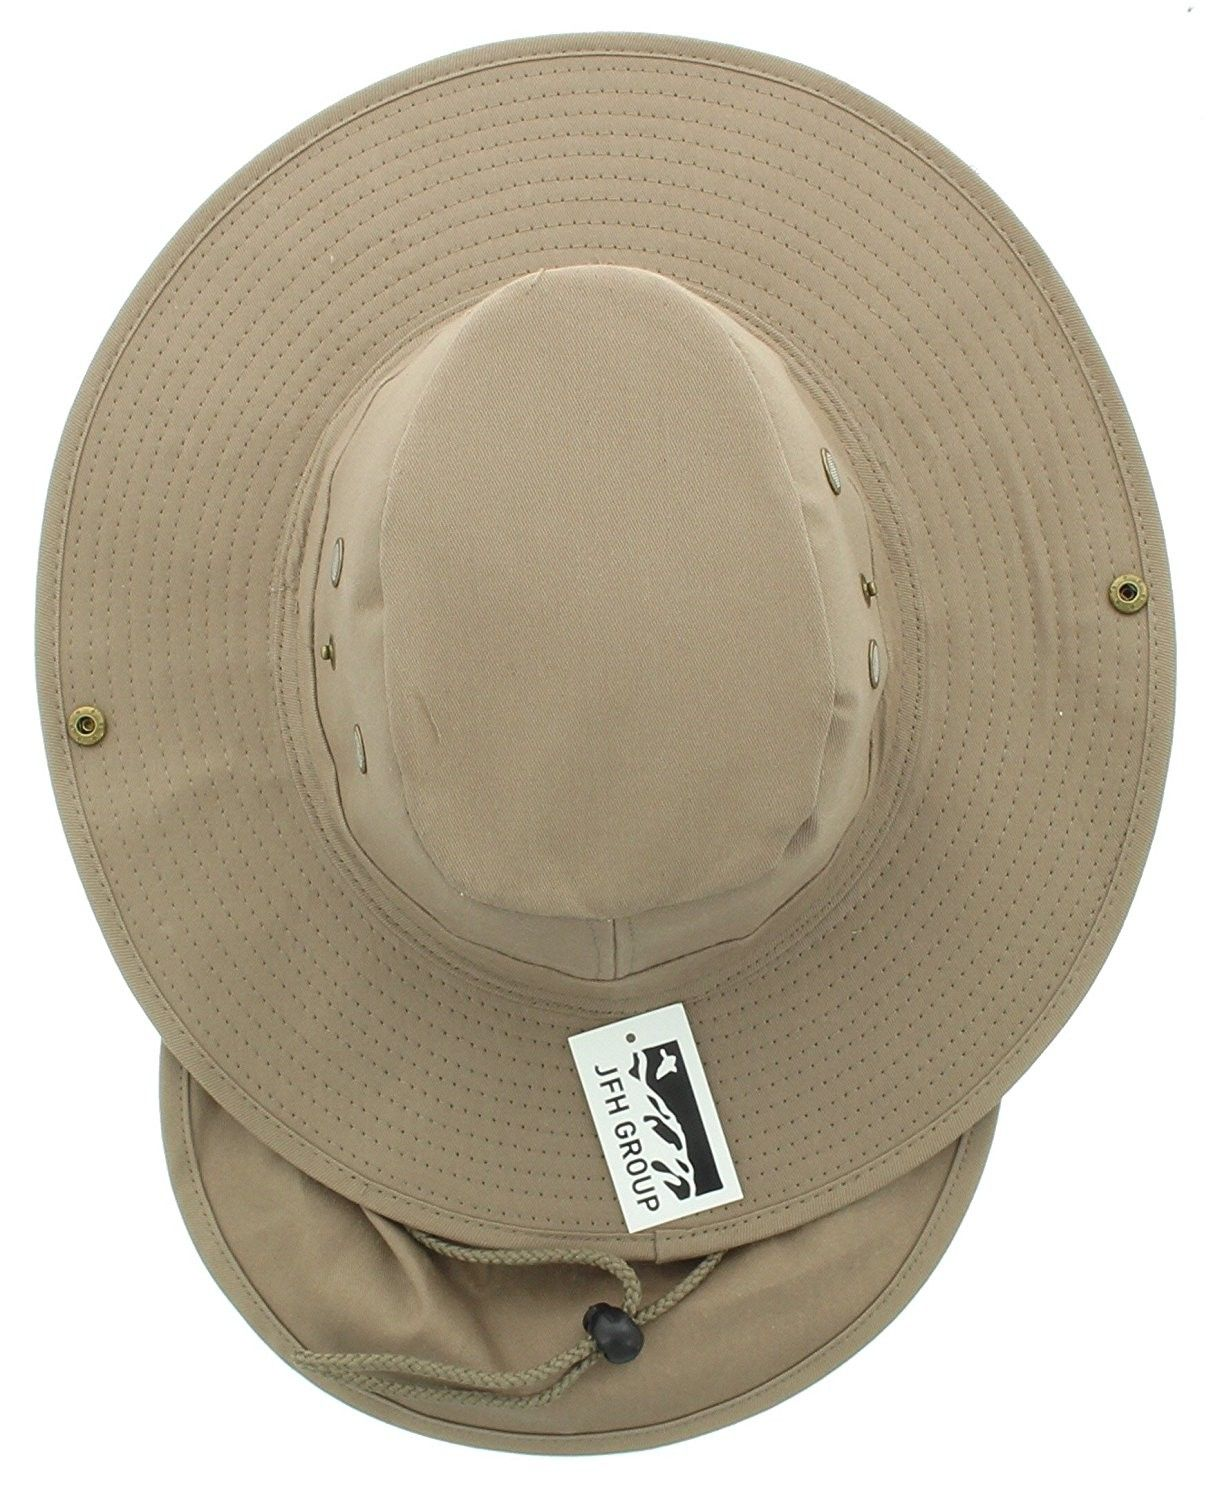 714791f1 Hats & Caps, Men's Hats & Caps, Sun Hats, JFH Wide Brim Bora Booney Outdoor  Safari Summer Hat w/Neck Flap & Sun Protection - Khaki Solid - CP183K4ETE3 # caps ...